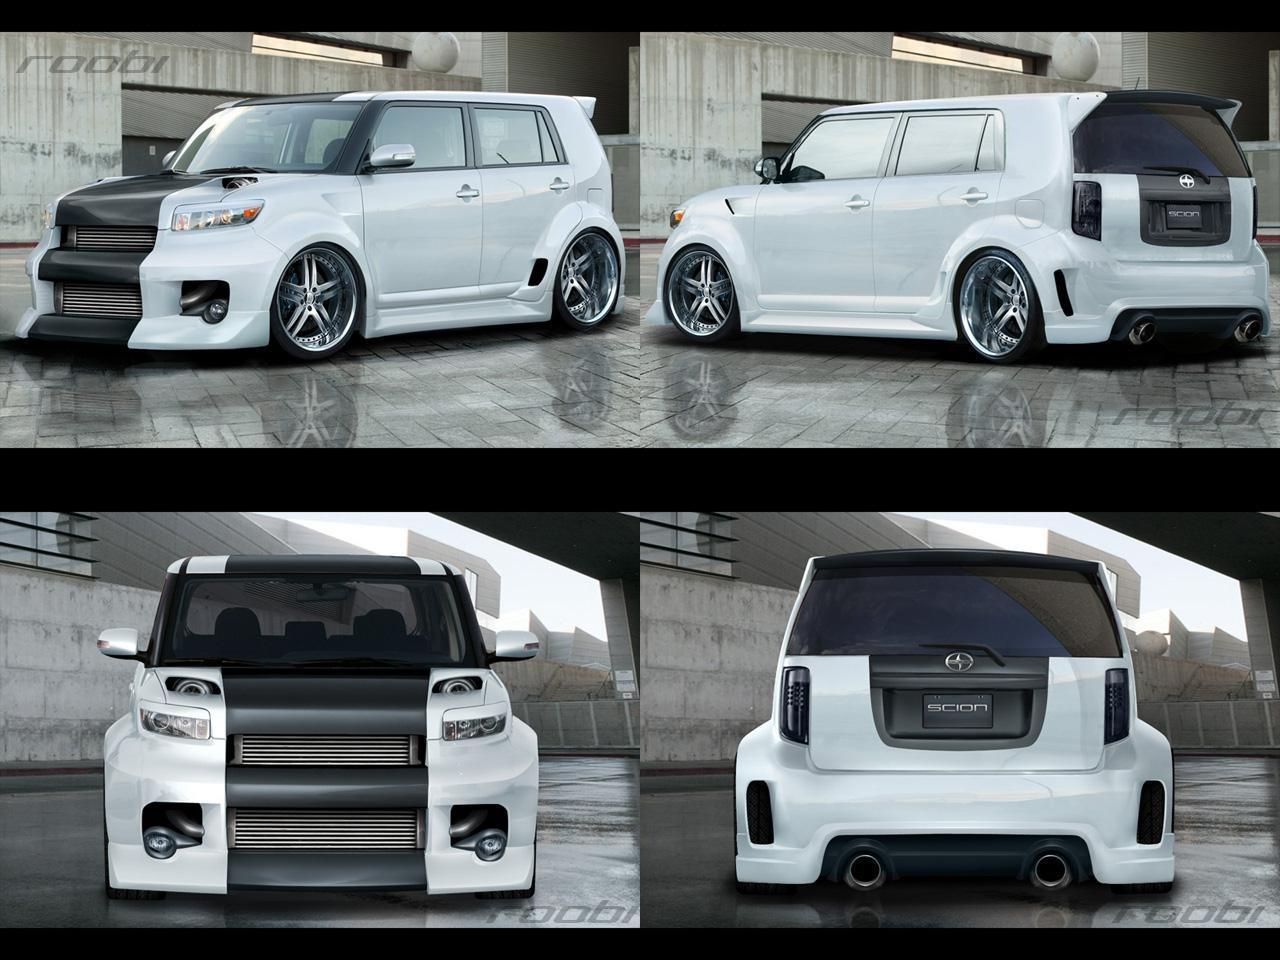 Scion xb tuning wallpaper